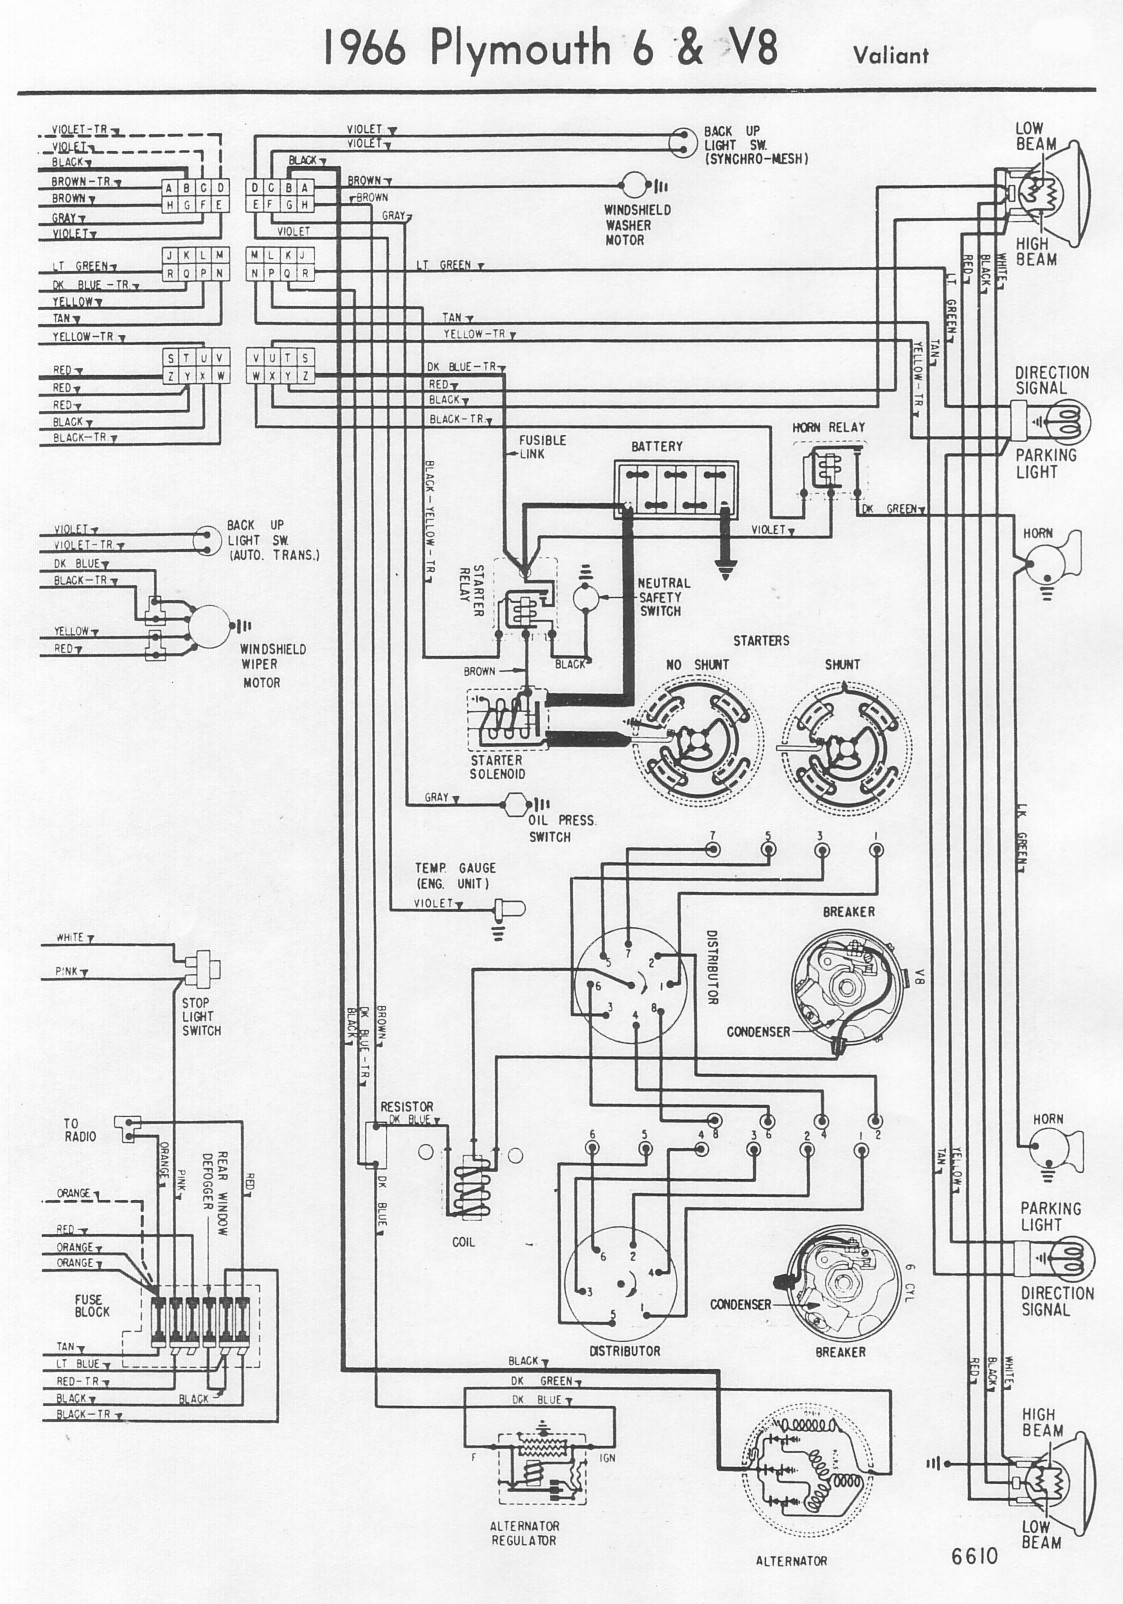 seaark 24v trolling motor wiring diagram wiring diagrams for 1966 plymouth wiring diagram  wiring diagrams for 1966 plymouth